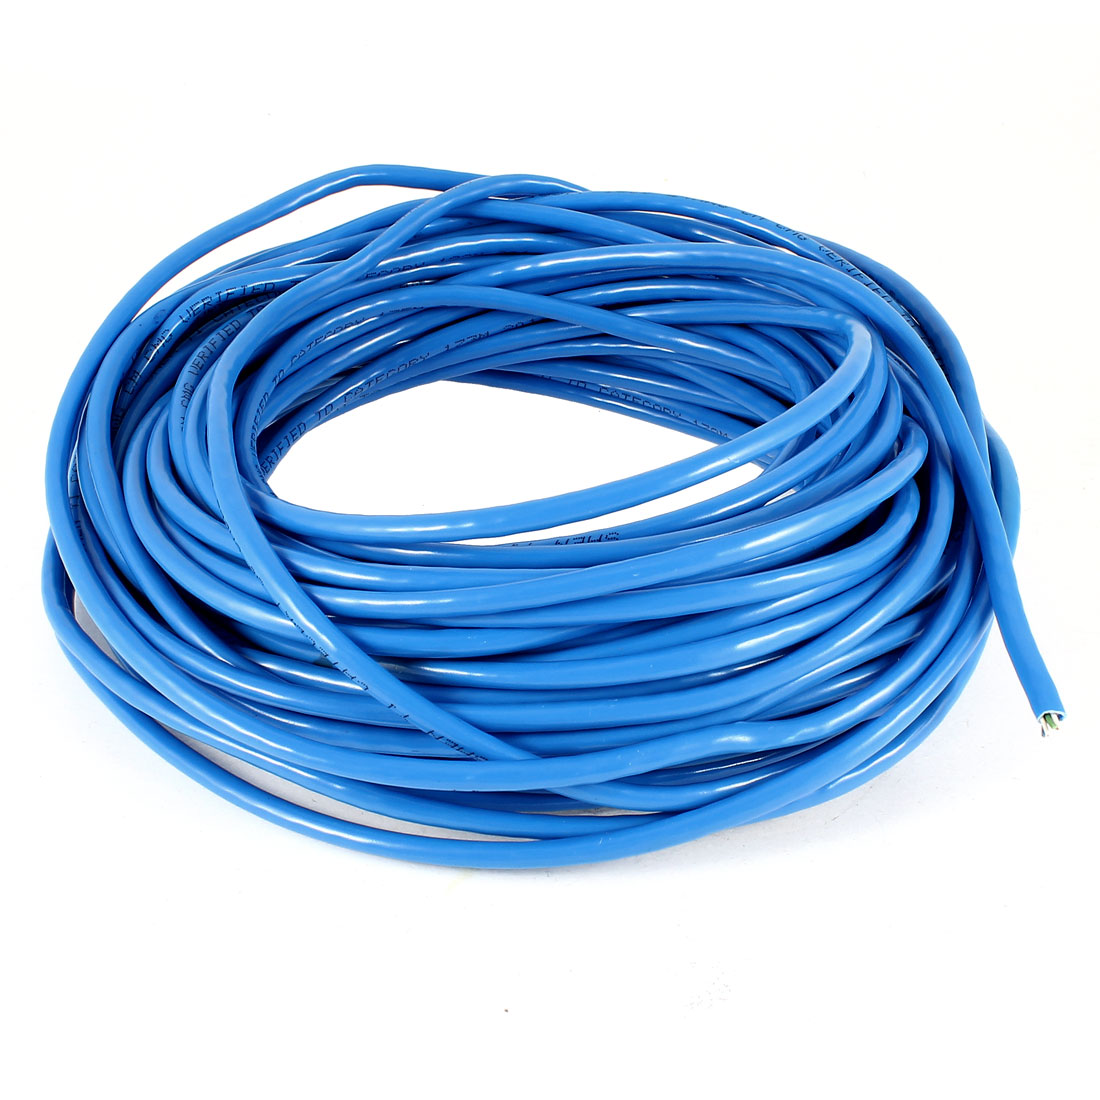 Round Cat5e Cable UTP Wire Ethernet LAN Network Cat5 Cord Blue 75Ft 23M